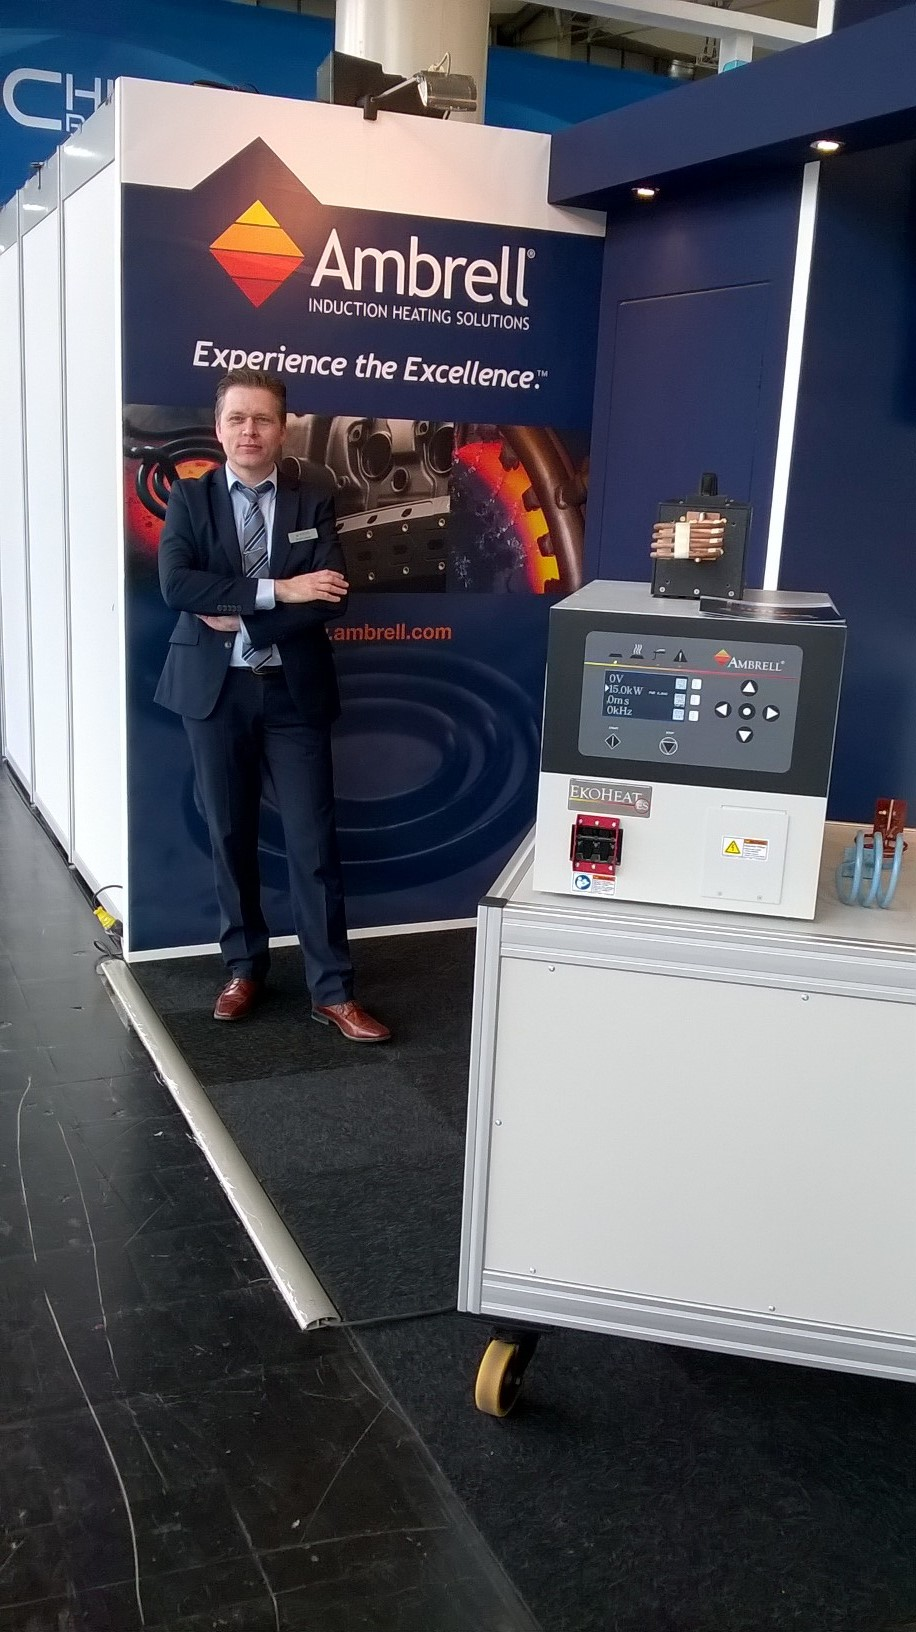 Induction heating at HANNOVER MESSE